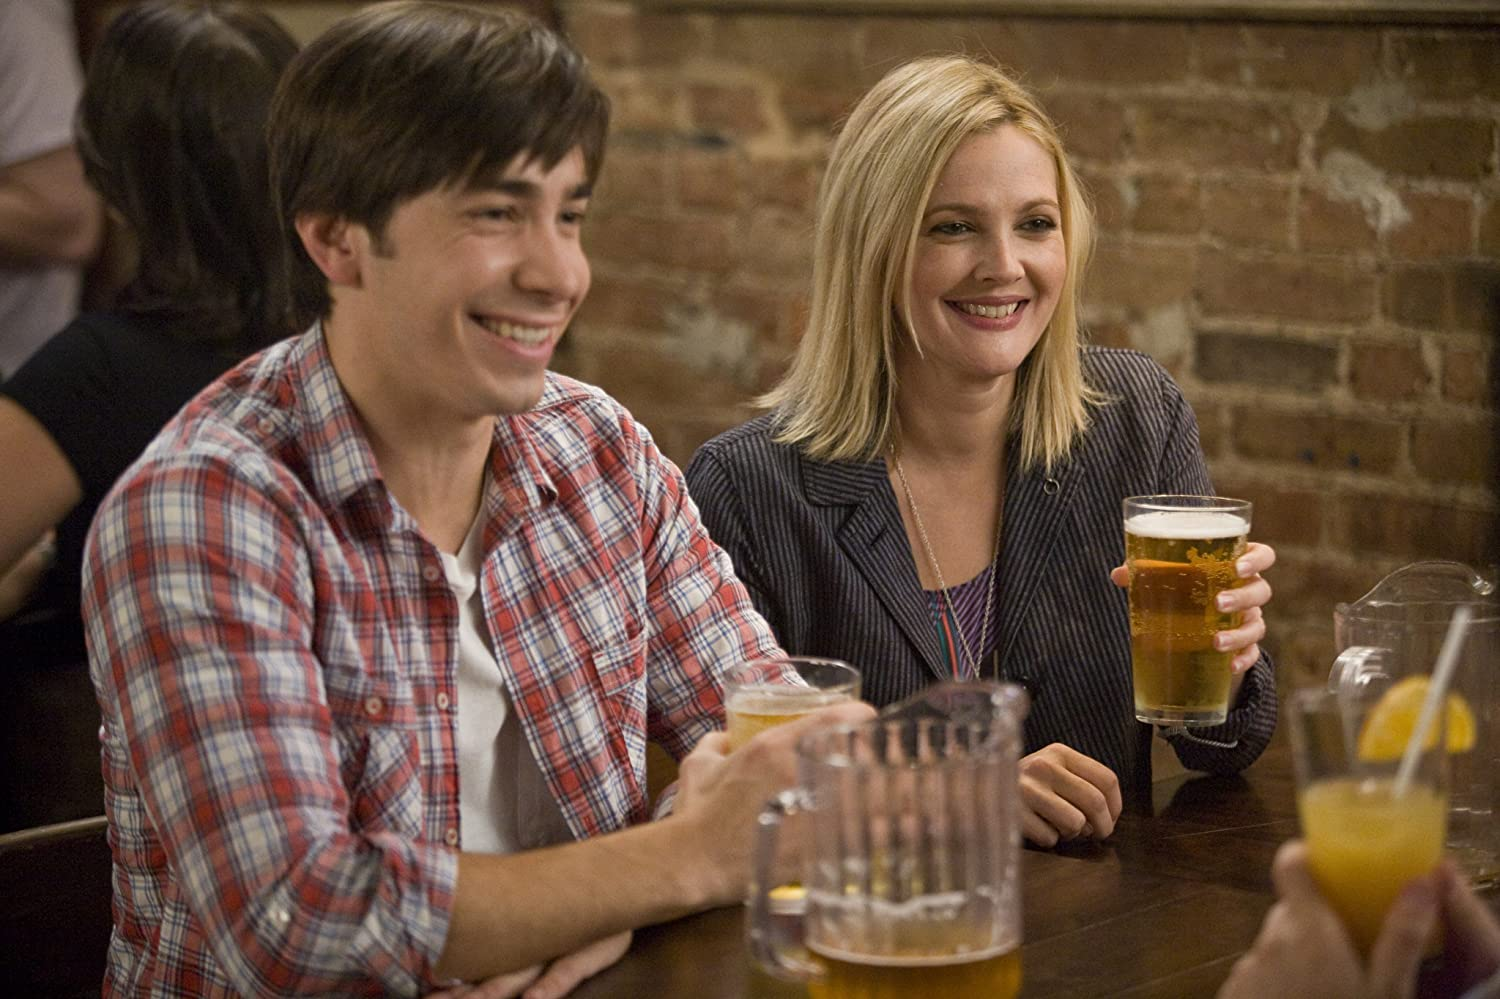 Drew Barrymore and Justin Long in Going the Distance (2010)